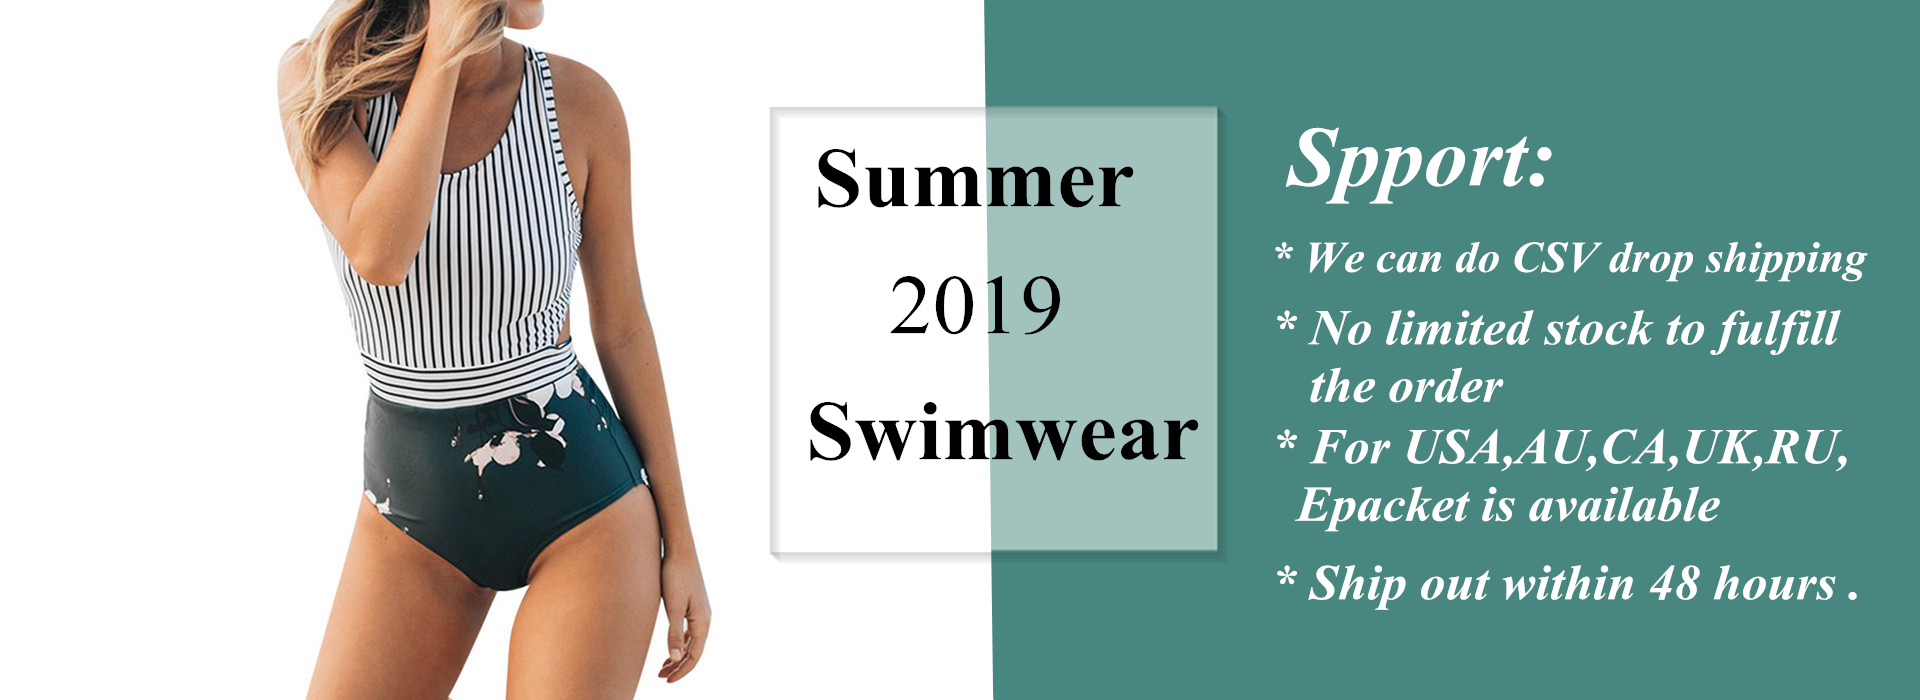 c463a2e97f746 Pleasure Swimsuit Store - Small Orders Online Store